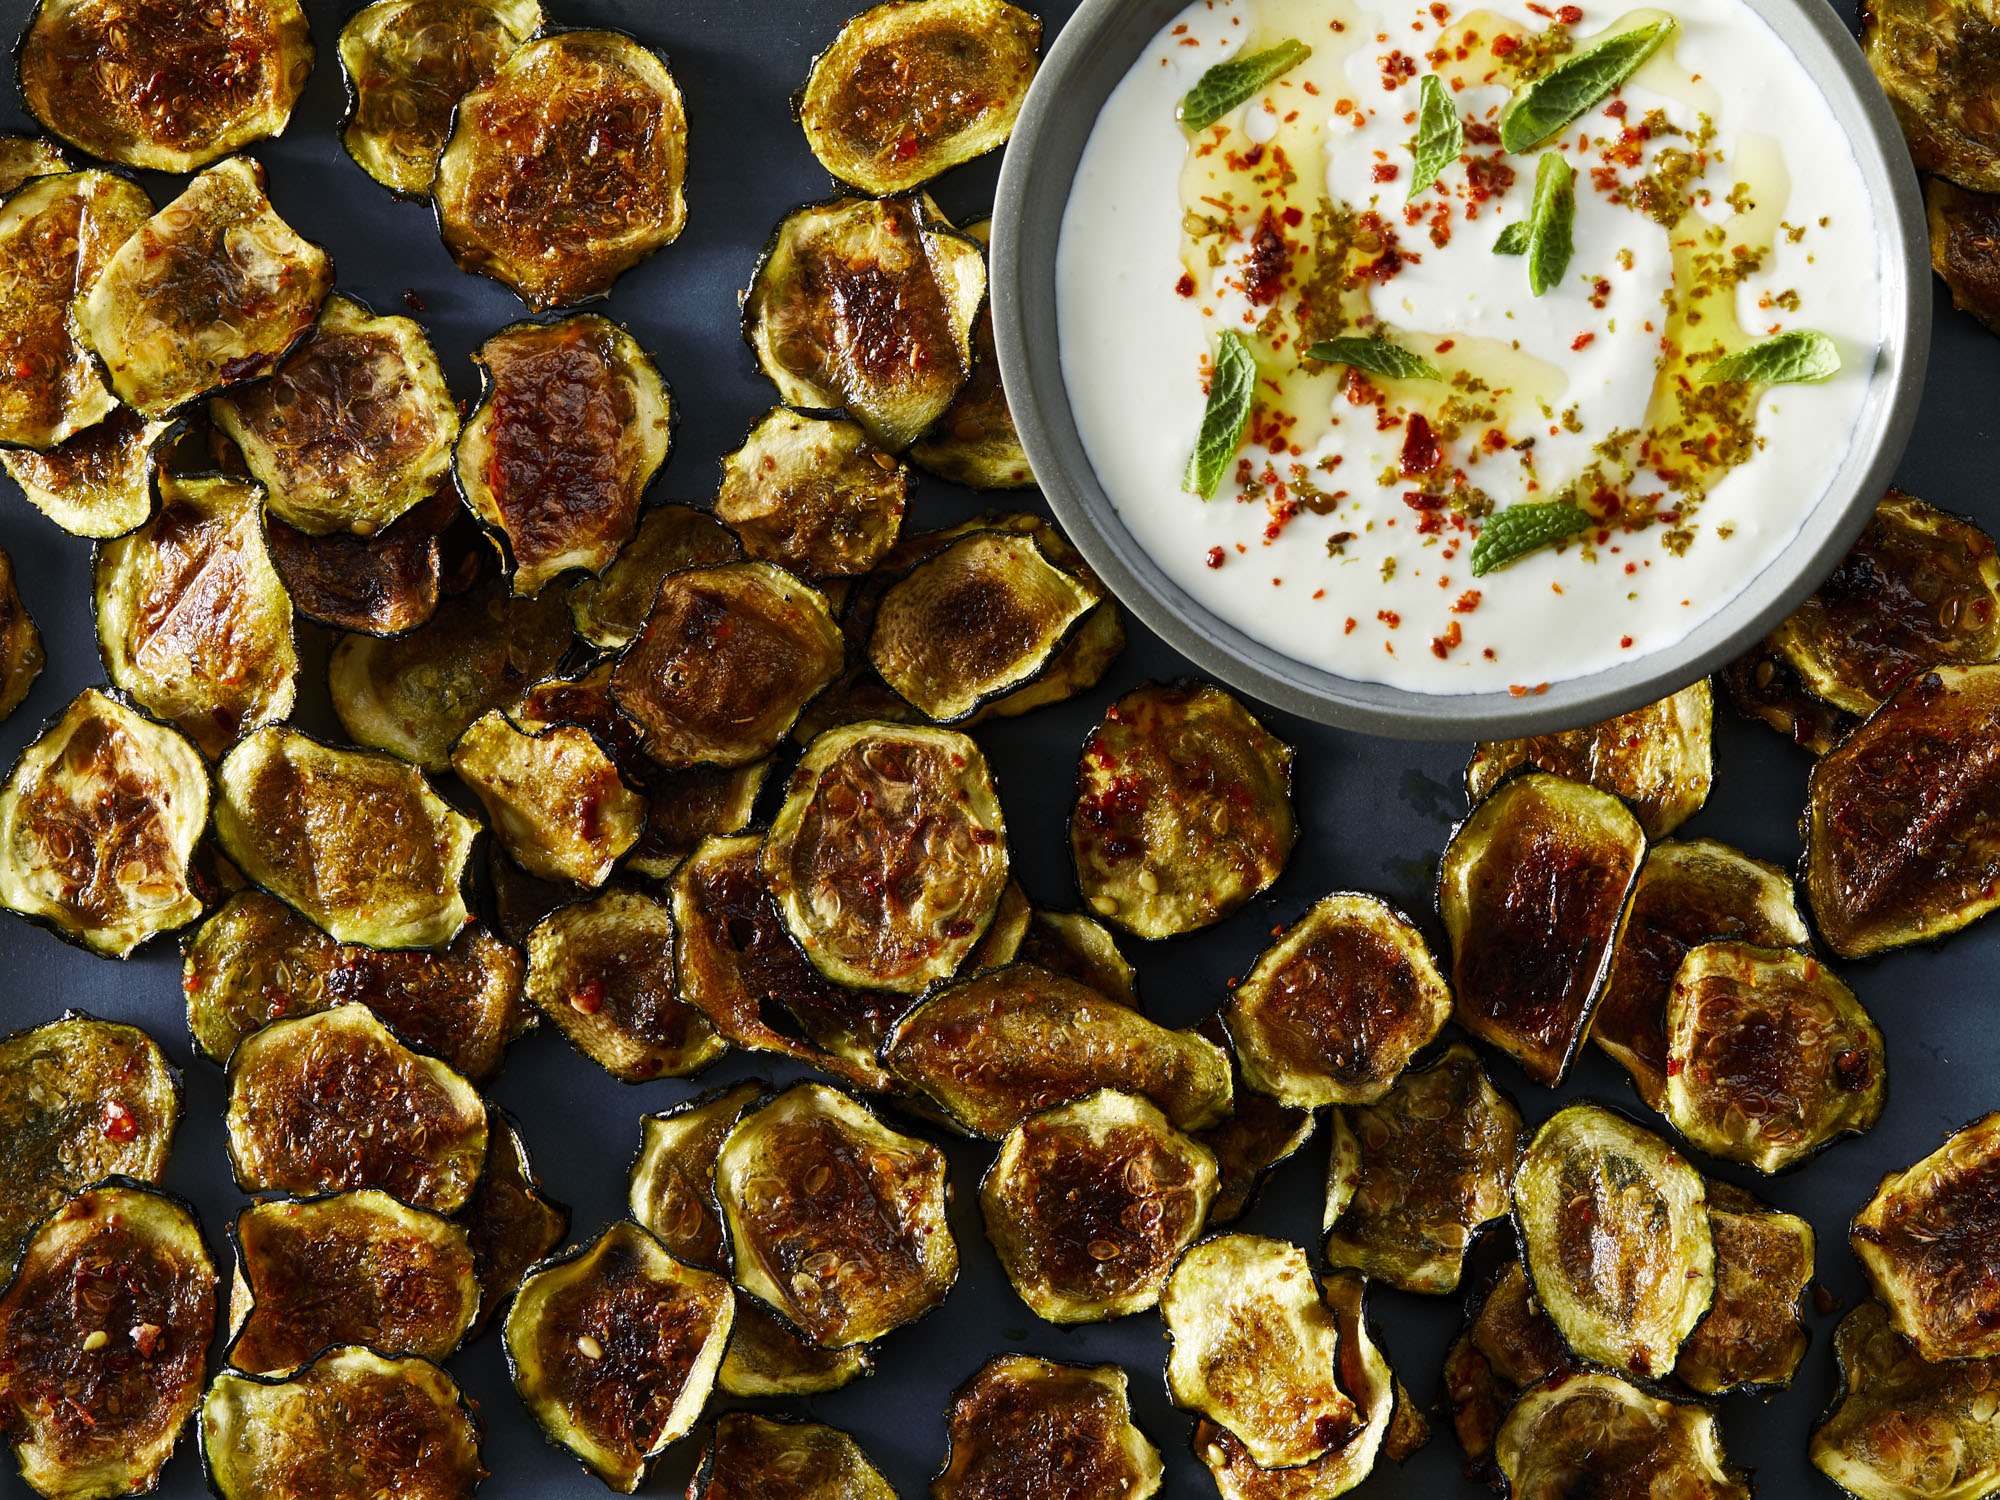 Smoky Baked Zucchini Chips with Whipped Feta